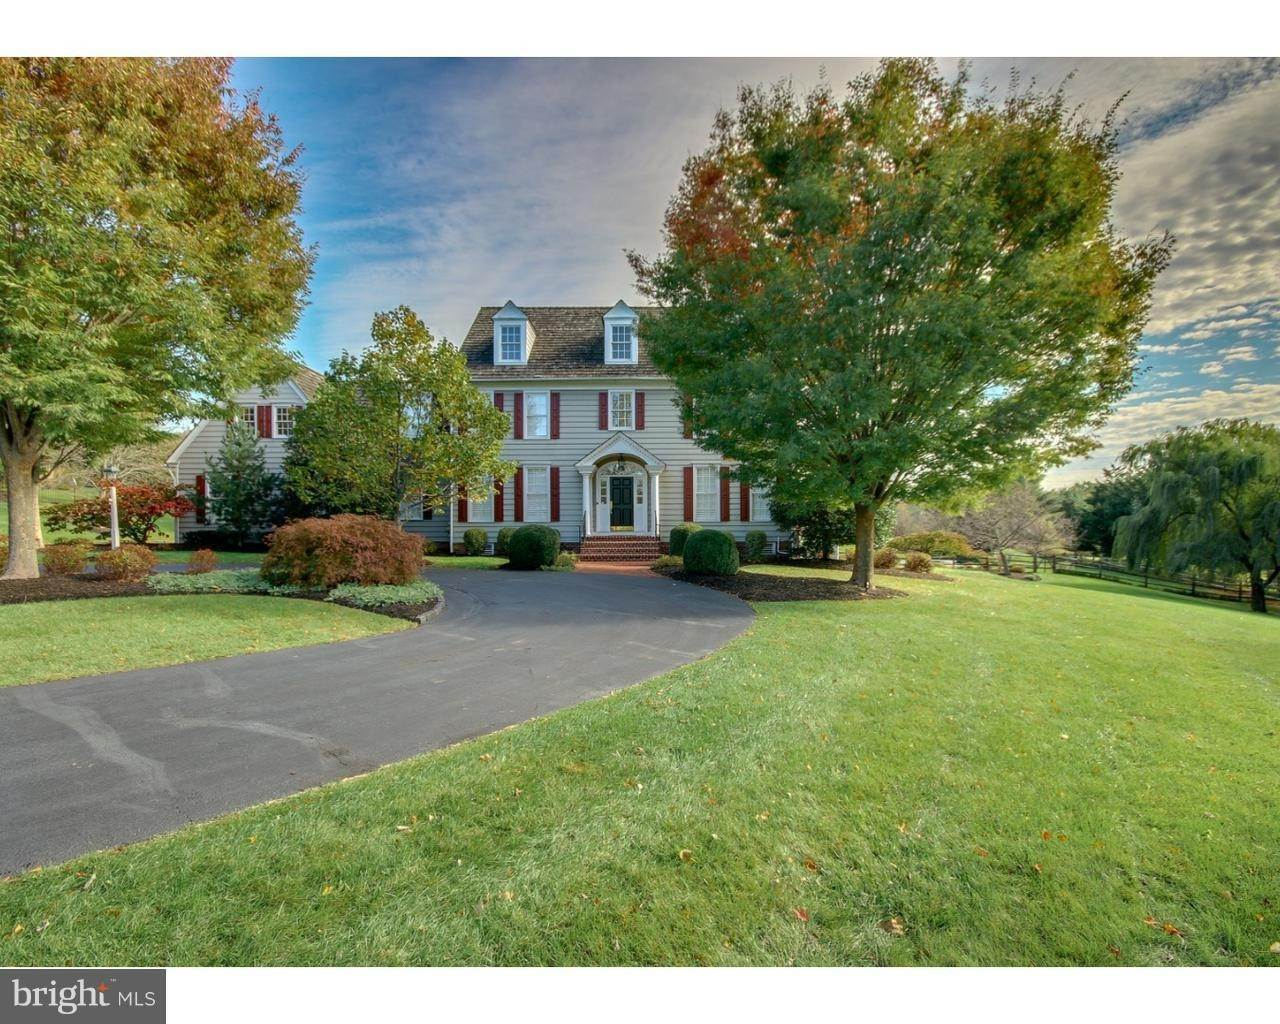 Detached House for Sale at 1092 CREAMERY Road Newtown, Pennsylvania 18940 United States